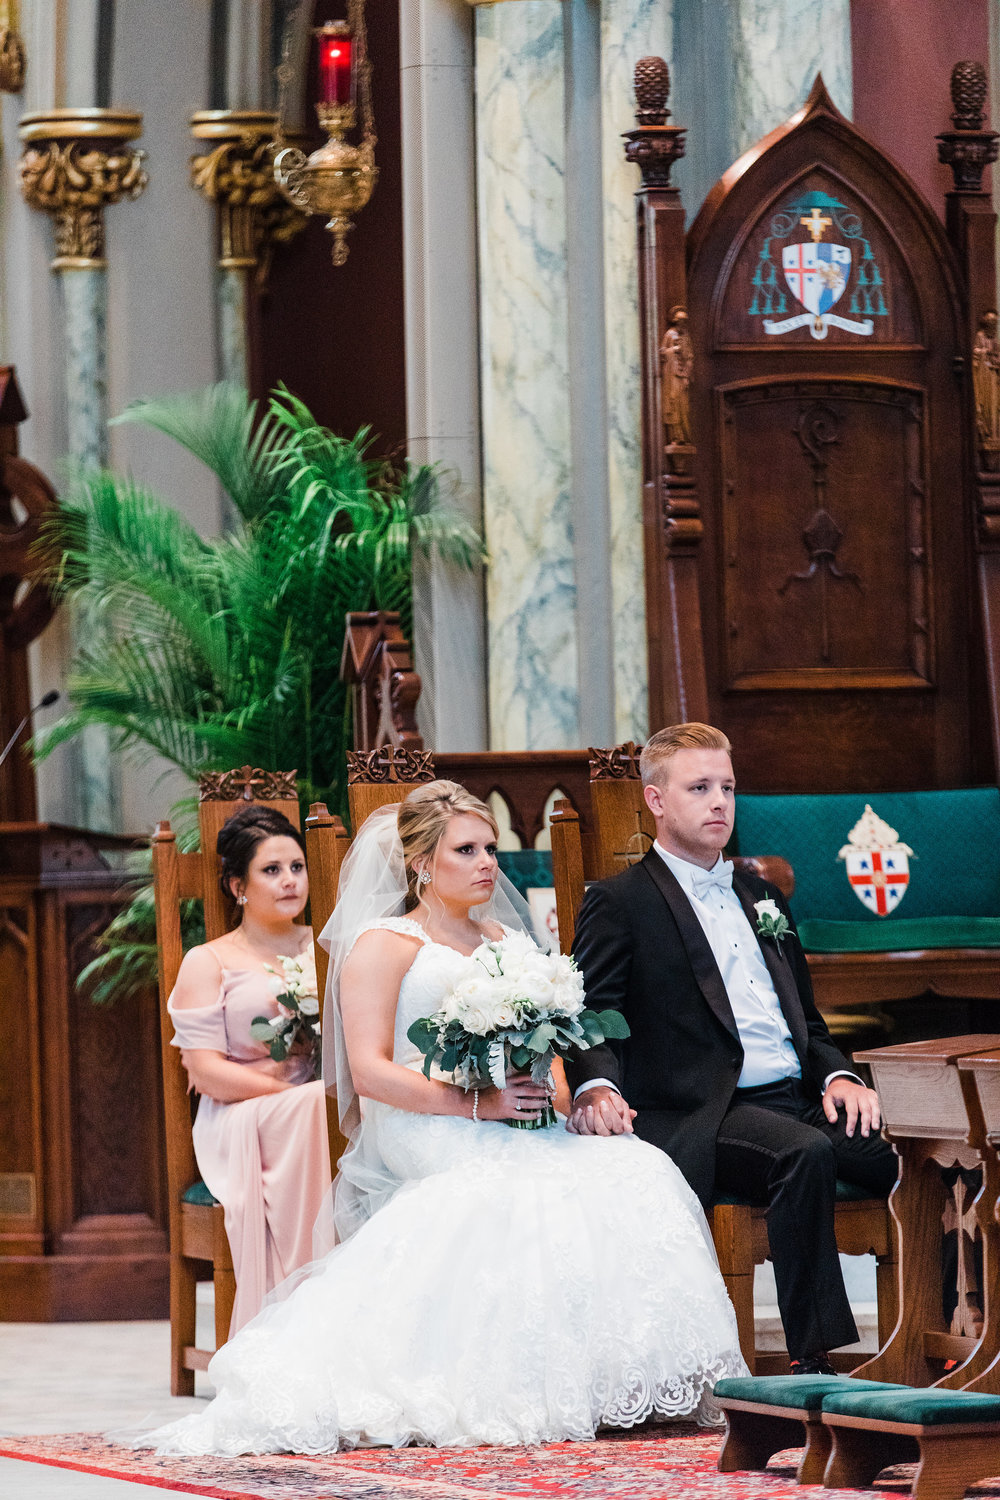 savannah-bridal-shop-i-and-b-bride-meghan-rosamund-gown-by-maggie-sottero-st-johns-cathedral-wedding-apt-b-photography-9.JPG